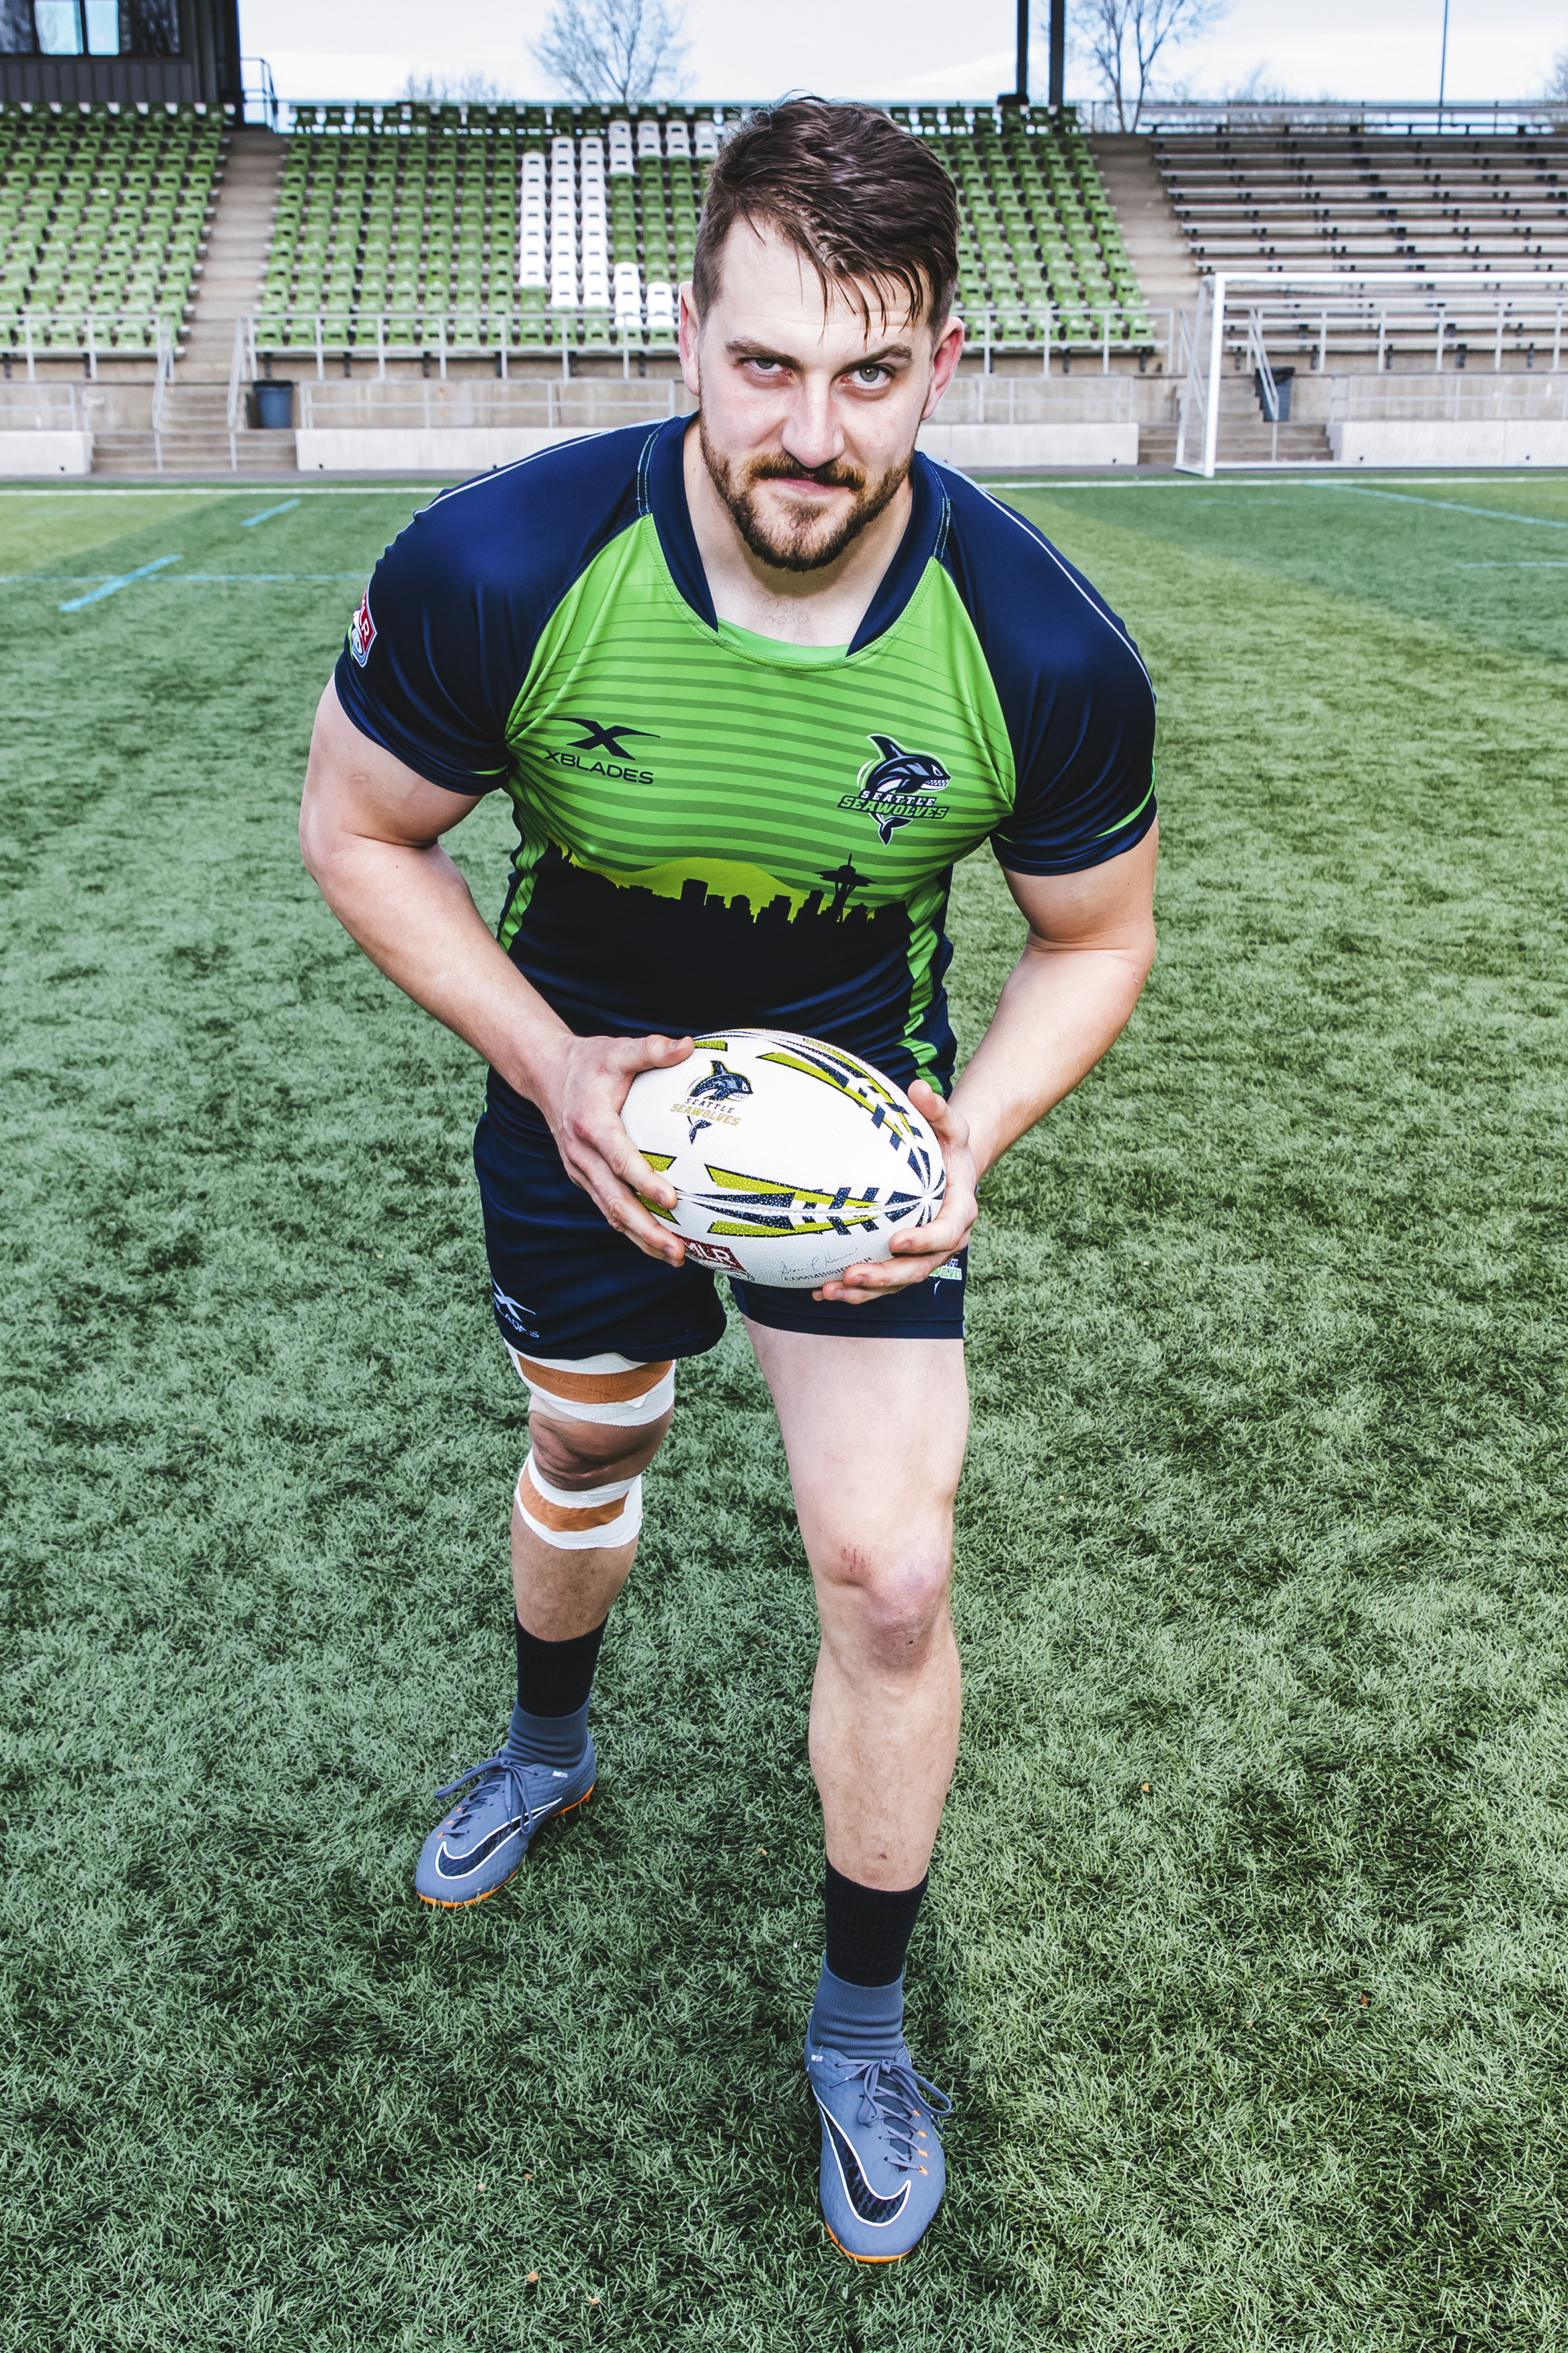 Meet Cam! This handsome man is from London, Ontario. The 29-year-old plays Flanker (although the roster says Lock so maybe he's a Flock? Sorry - bad joke) for the Seattle Seawolves, and his celebrity crush is Gal Gadot. Three cheers for Superwoman. (Image: Sunita Martini / Seattle Refined).